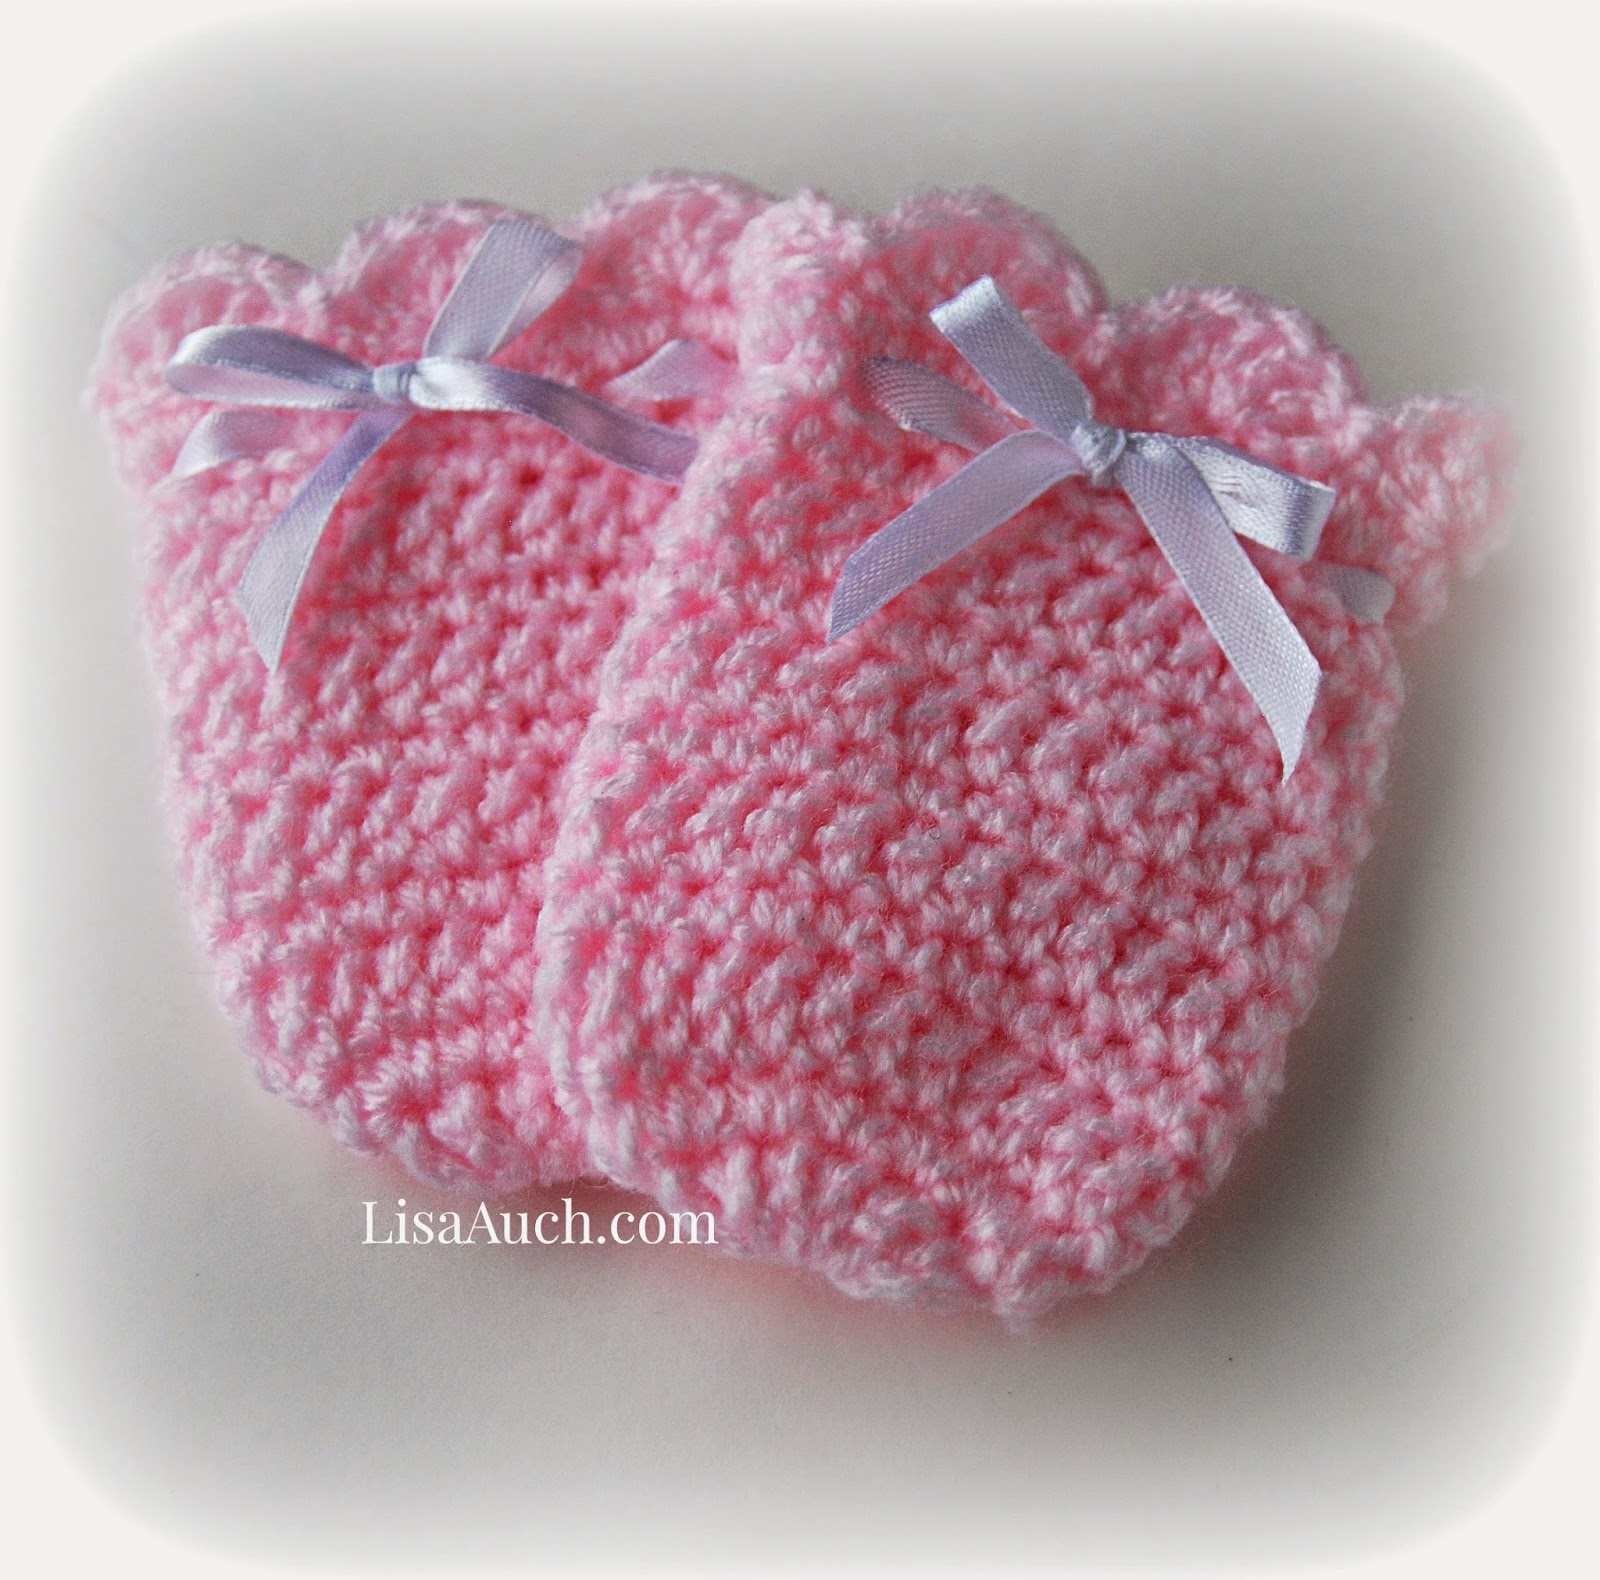 Crochet Pattern For Newborn Baby Sweater : Crochet Patterns Free Easy Mittens images